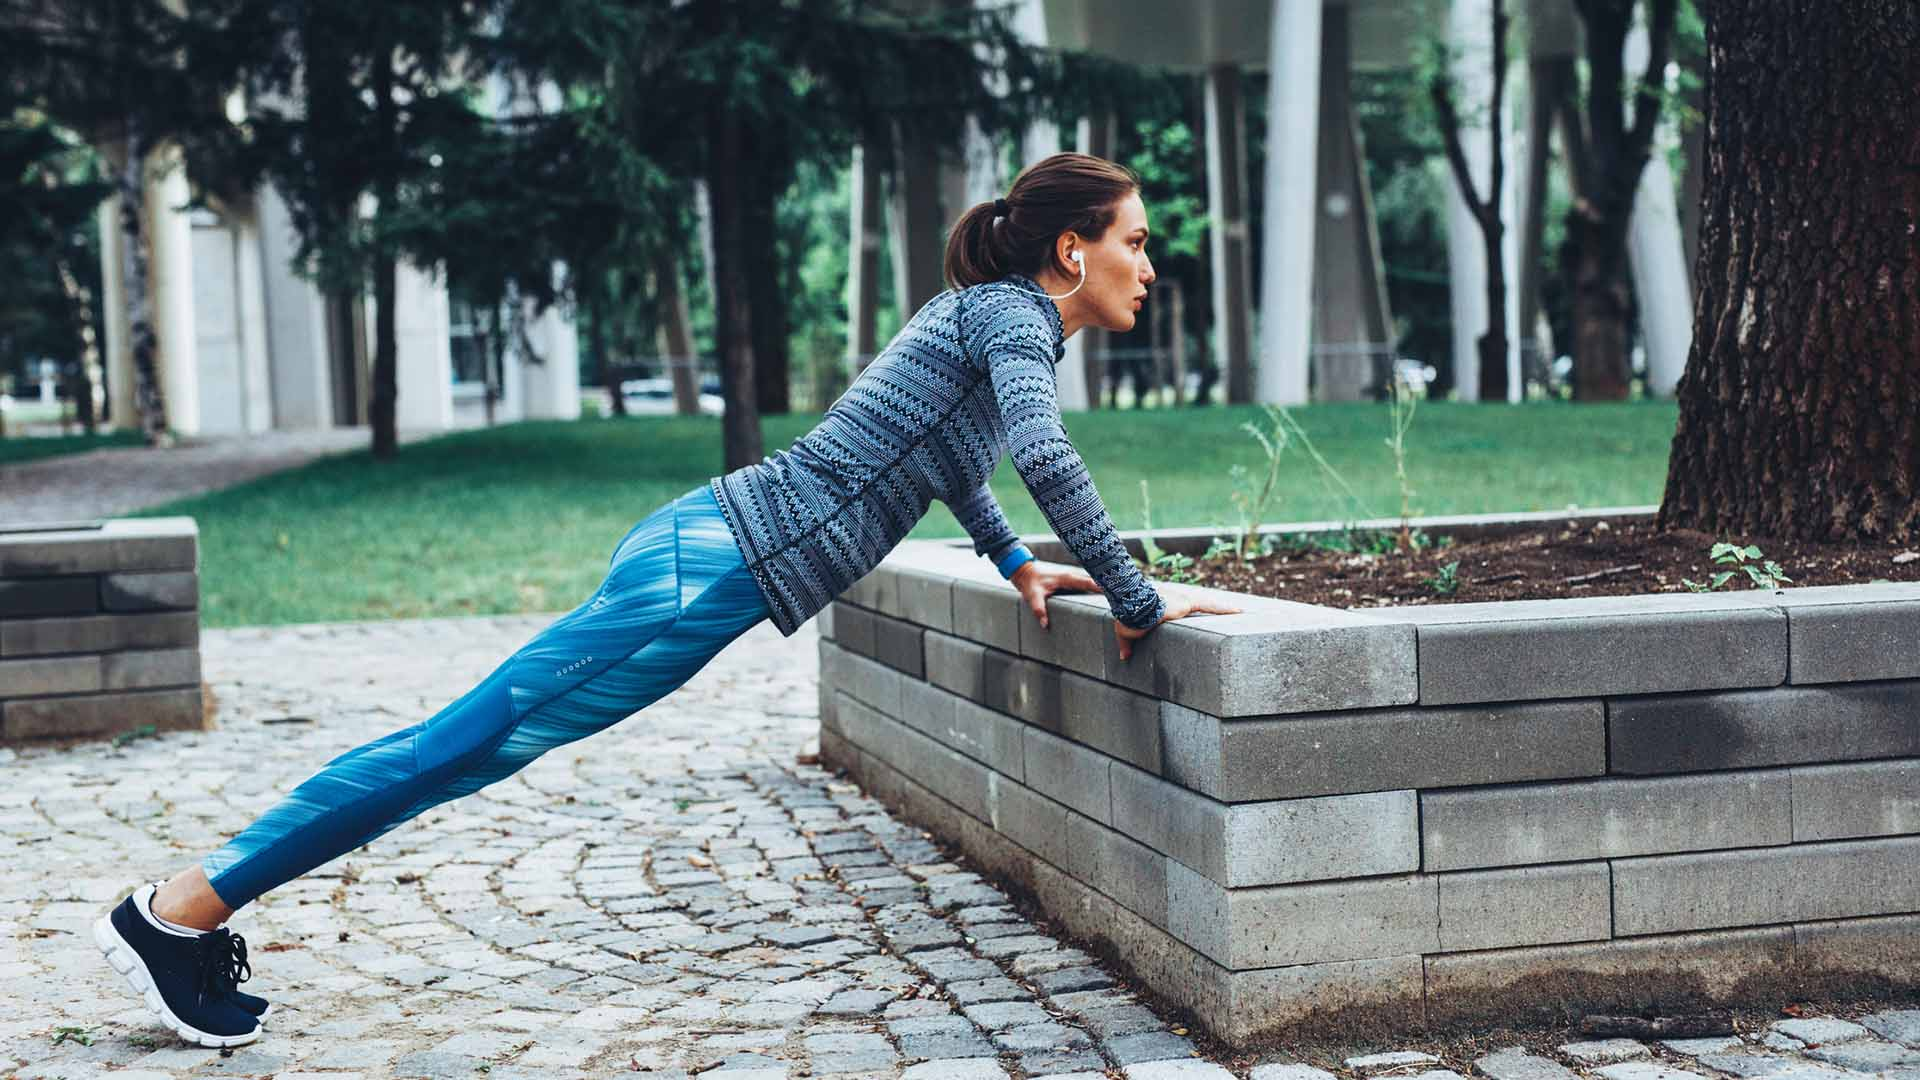 Woman doing pushups outdoor in the city.